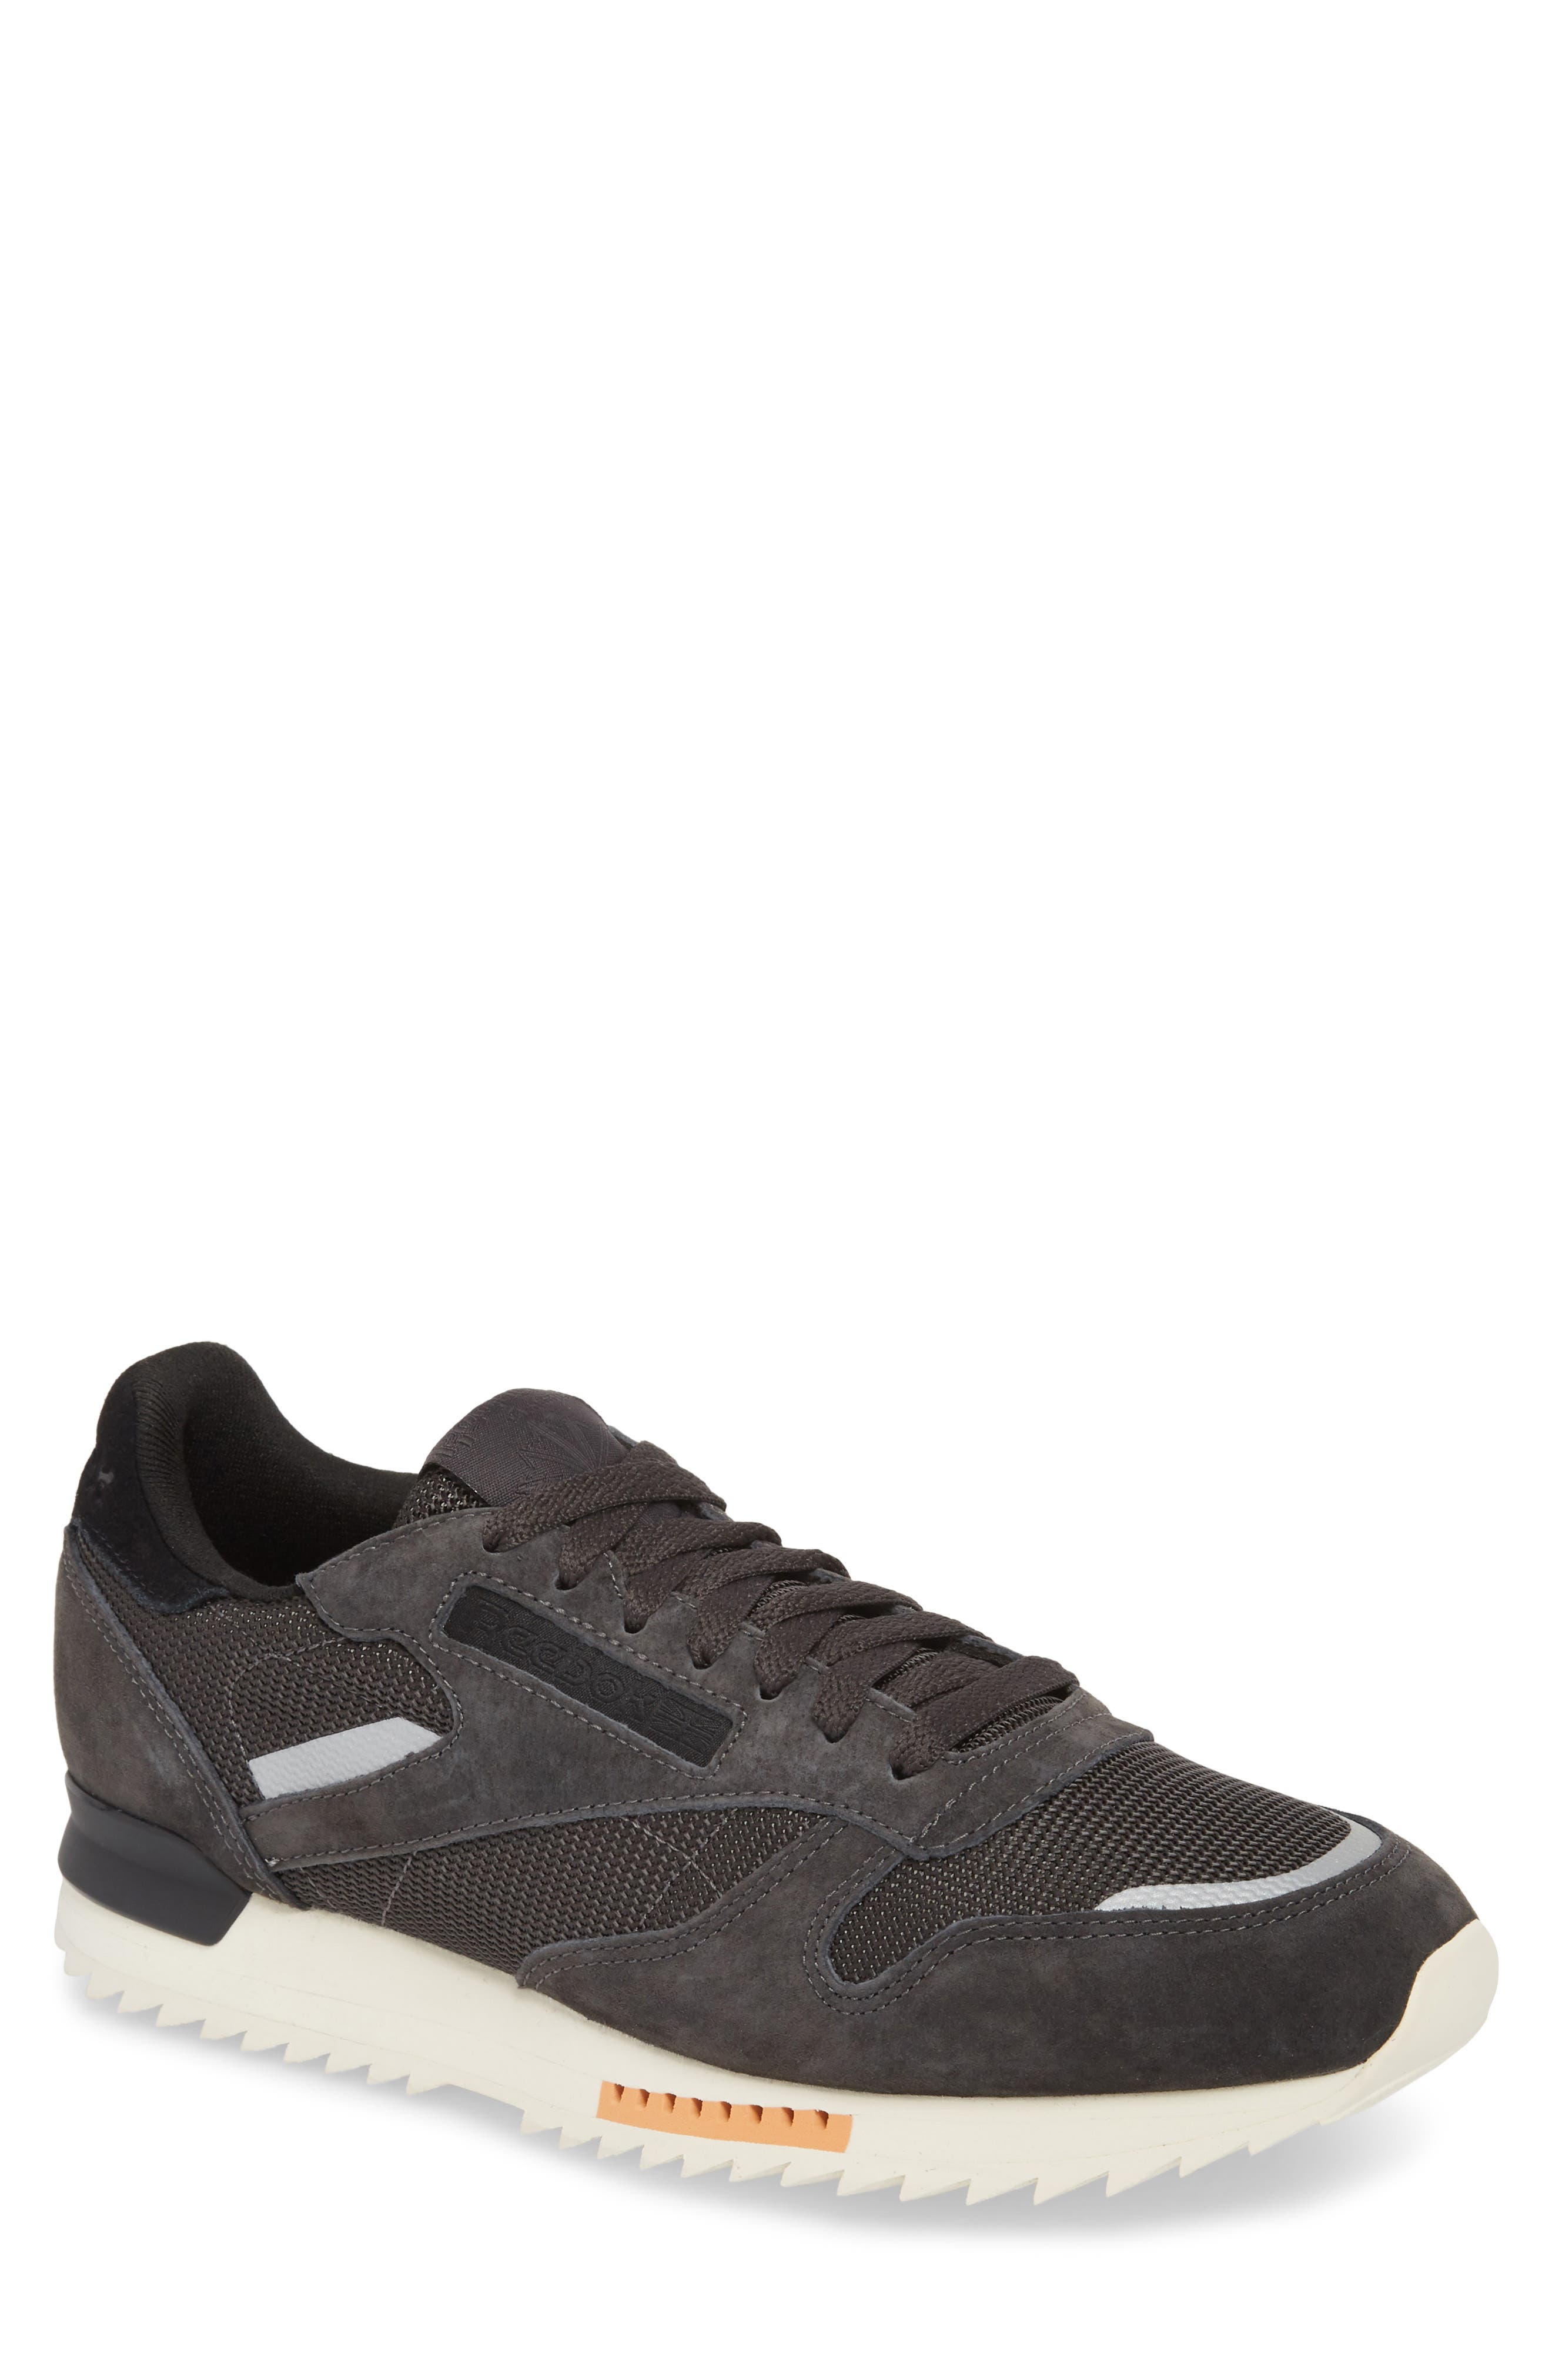 Classic Leather Ripple Sneaker,                         Main,                         color, Coal/ Grey/ White/ Black/ Dust